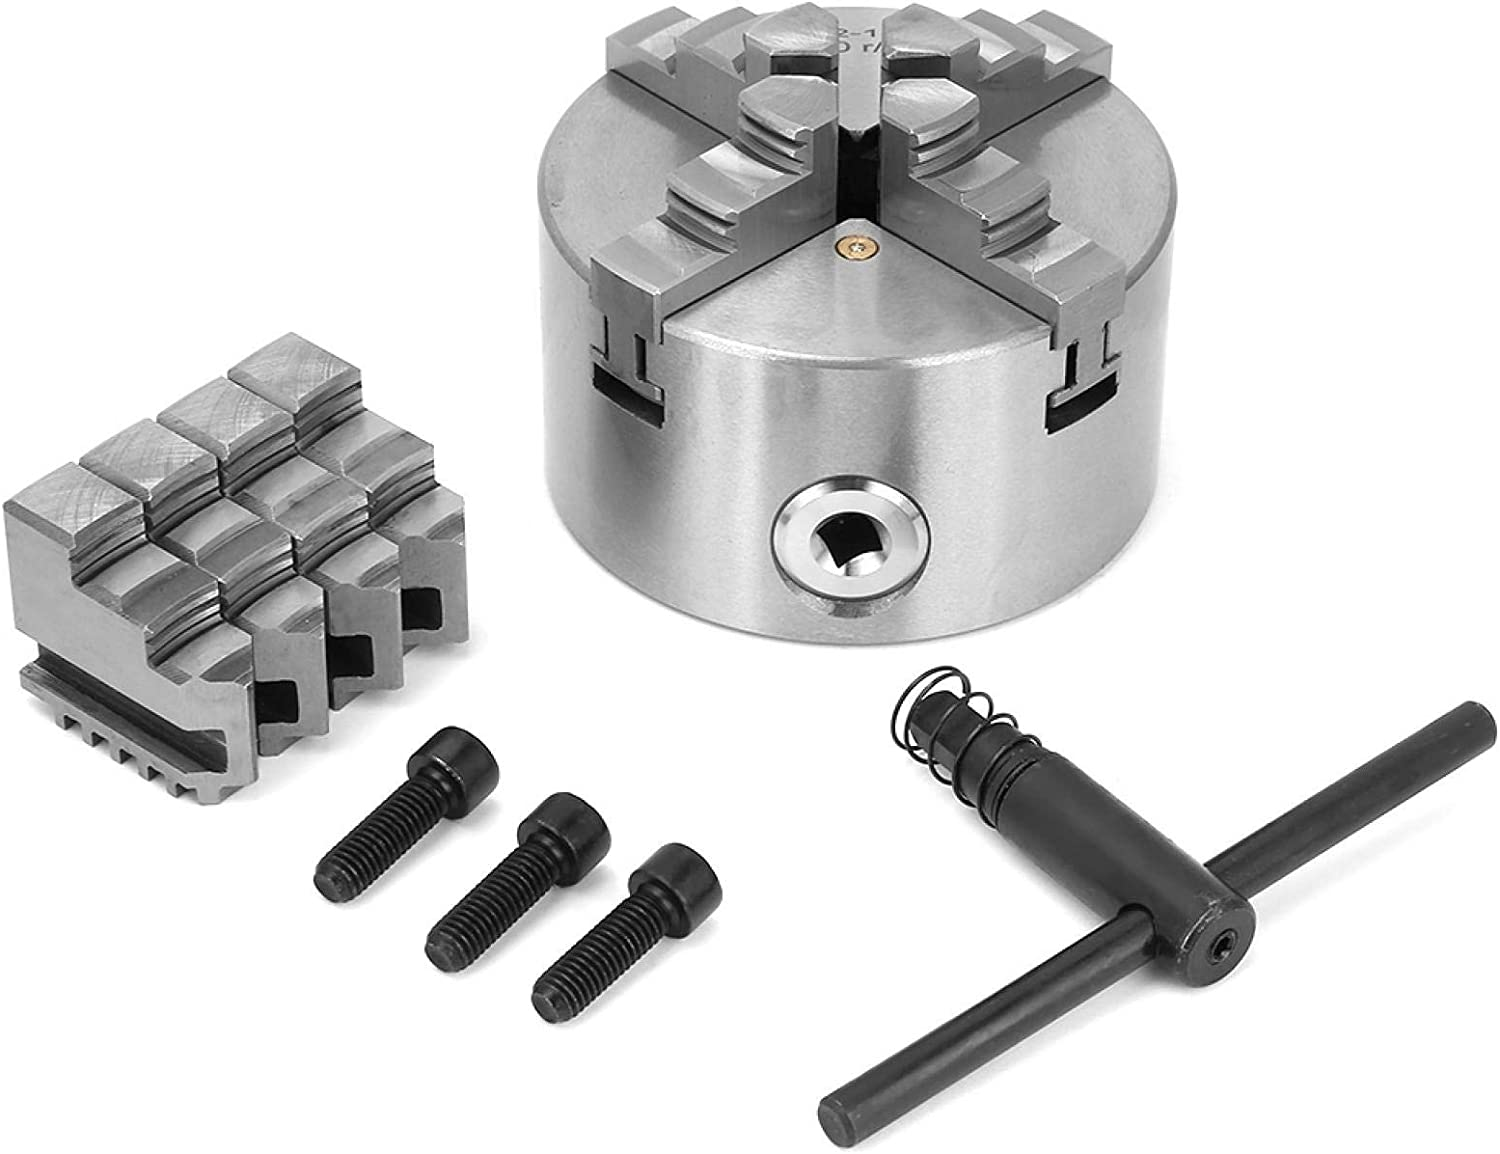 4inch Limited New products, world's highest quality popular! time cheap sale 100mm Four-Jaw Self-Centering Chuck-4 Jaw L